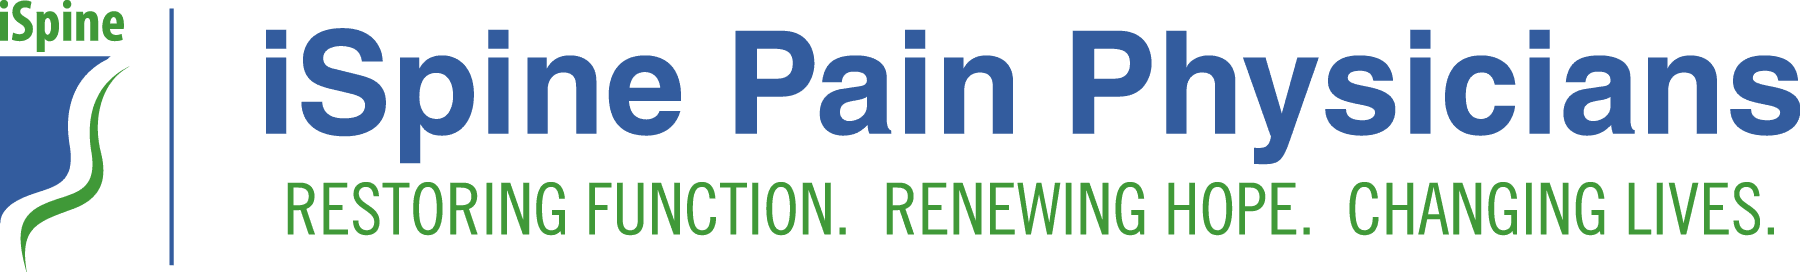 iSpine Pain Physicians